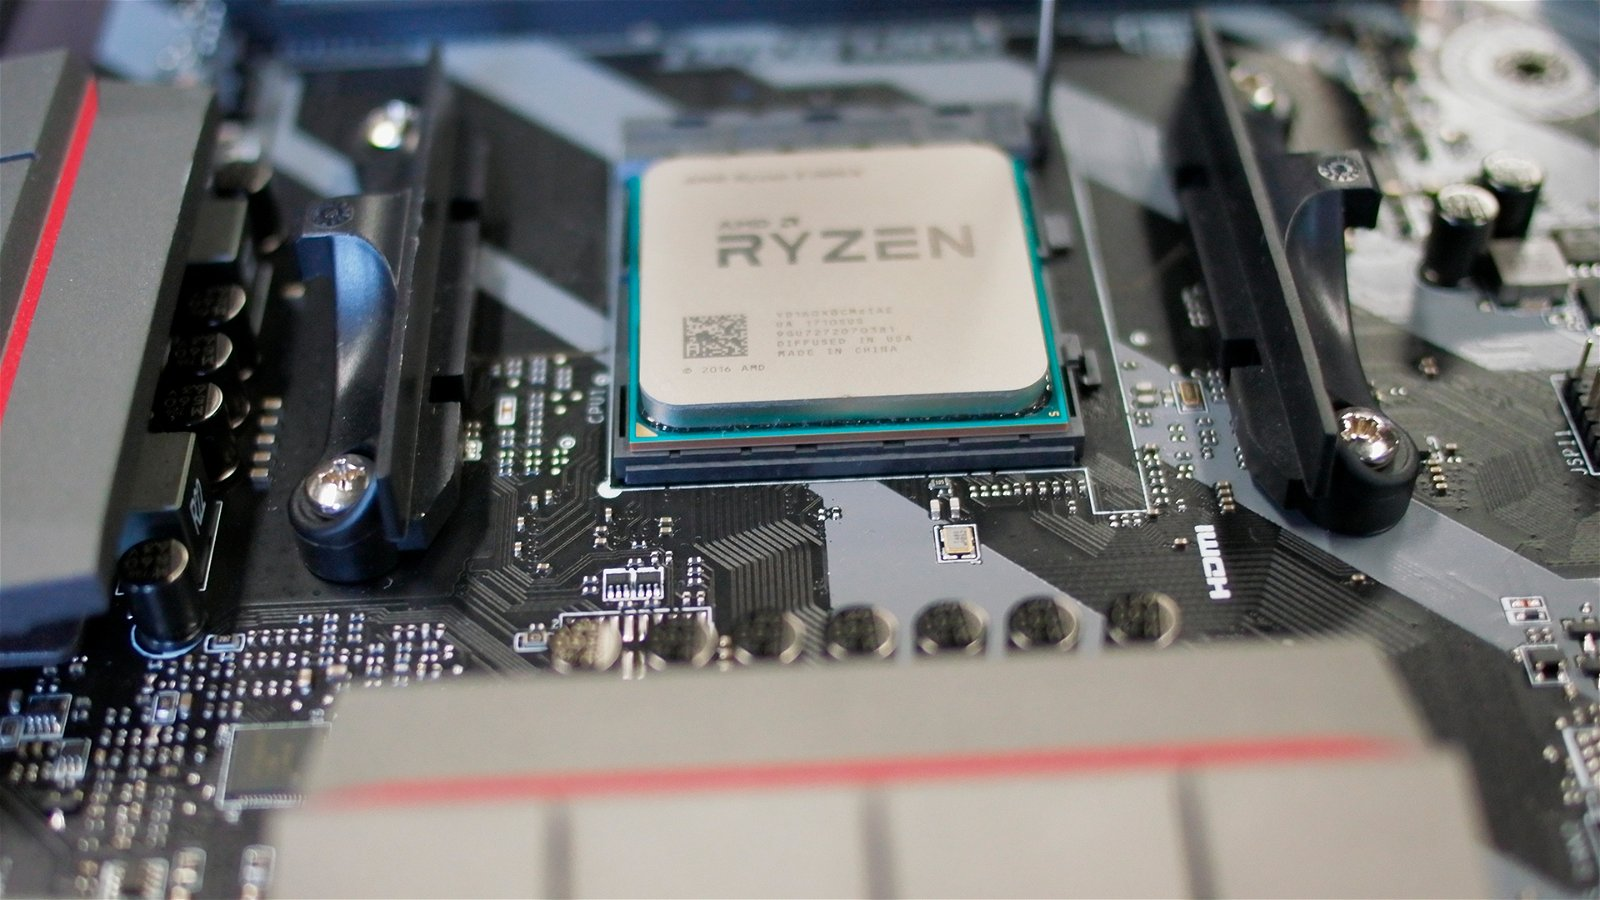 Ryzen 5 1500X Hardware Review - Pure Performance